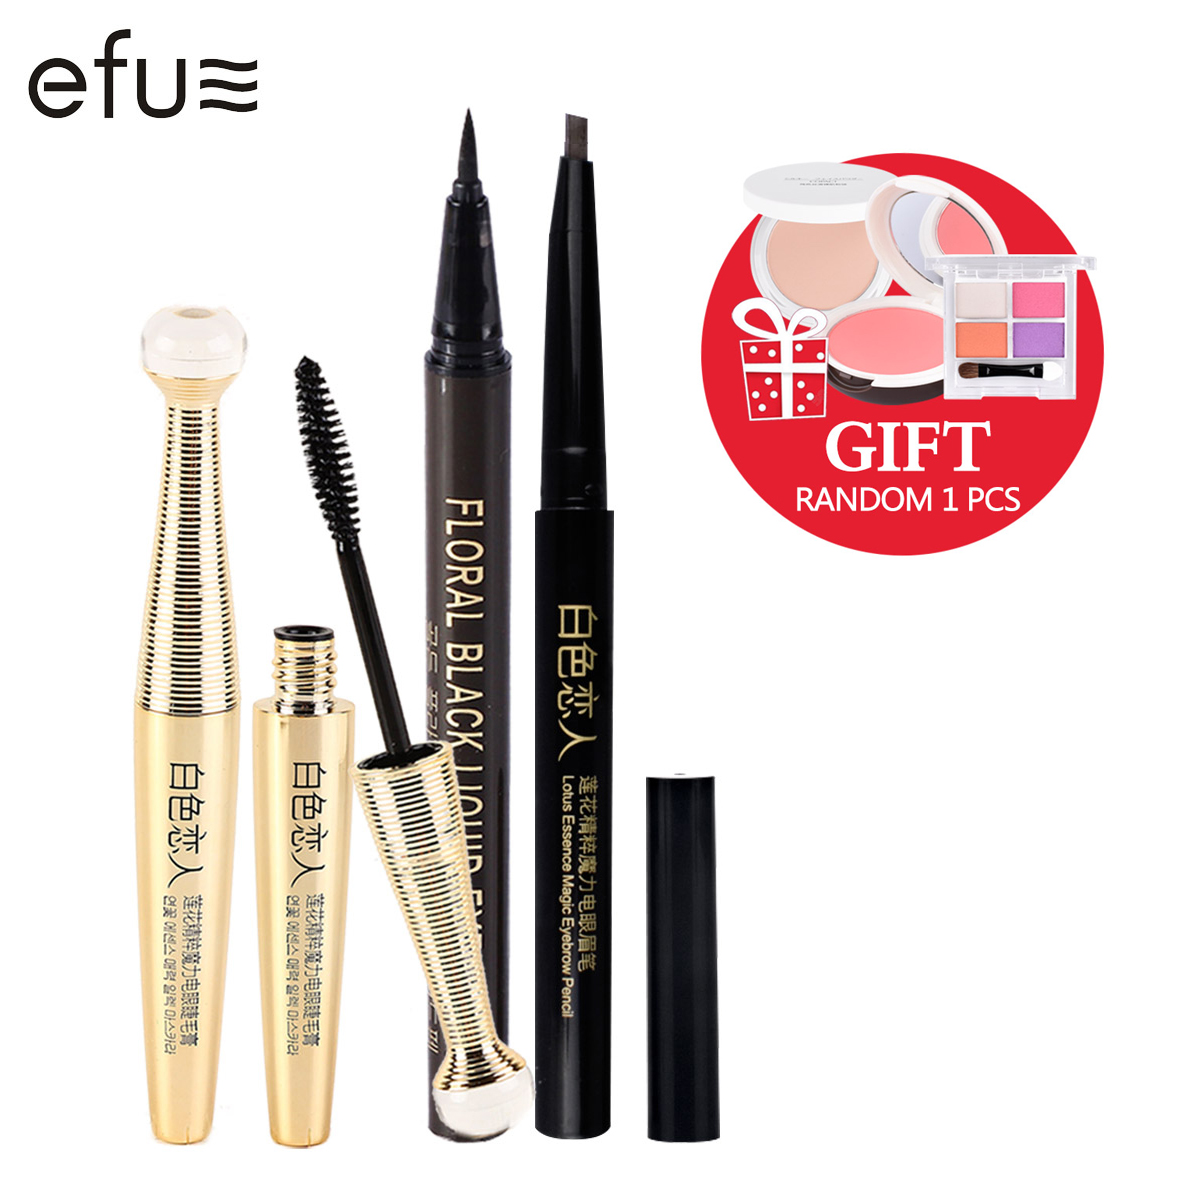 [ Buy 3 Get 1 Gift ]  1Set=4Pcs Waterproof Mascara And Eyeliner And Eyebrow pencil  Eye Makeup Set Makeup Brand EFU #EFUZ01